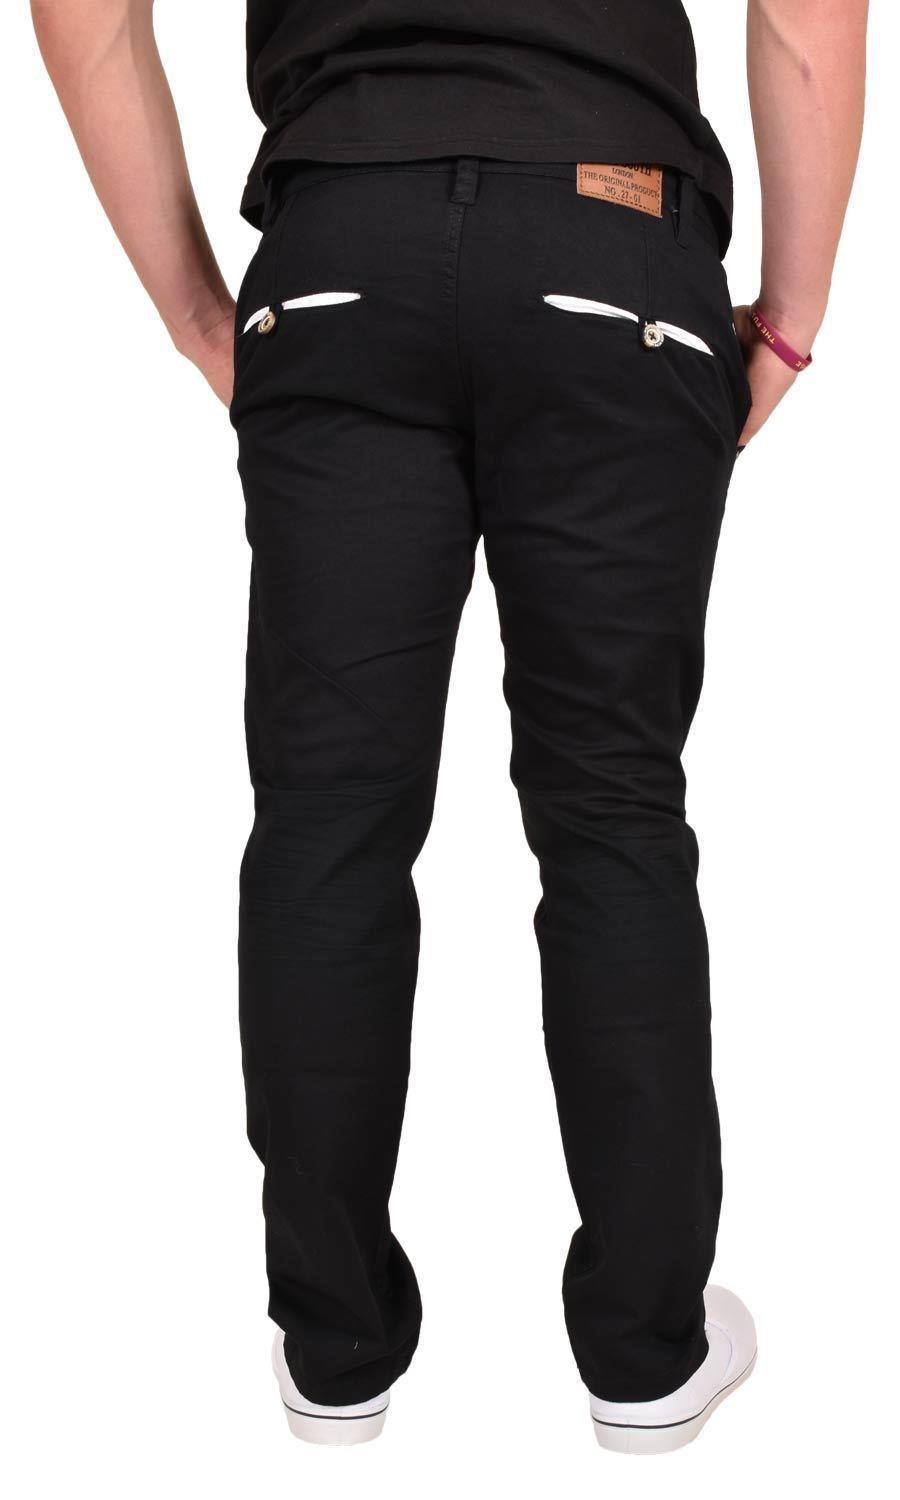 New-Mens-Designer-Jacksouth-Chino-Regular-Fit-Stretch-Cotton-Rich-Twill-Trousers thumbnail 19